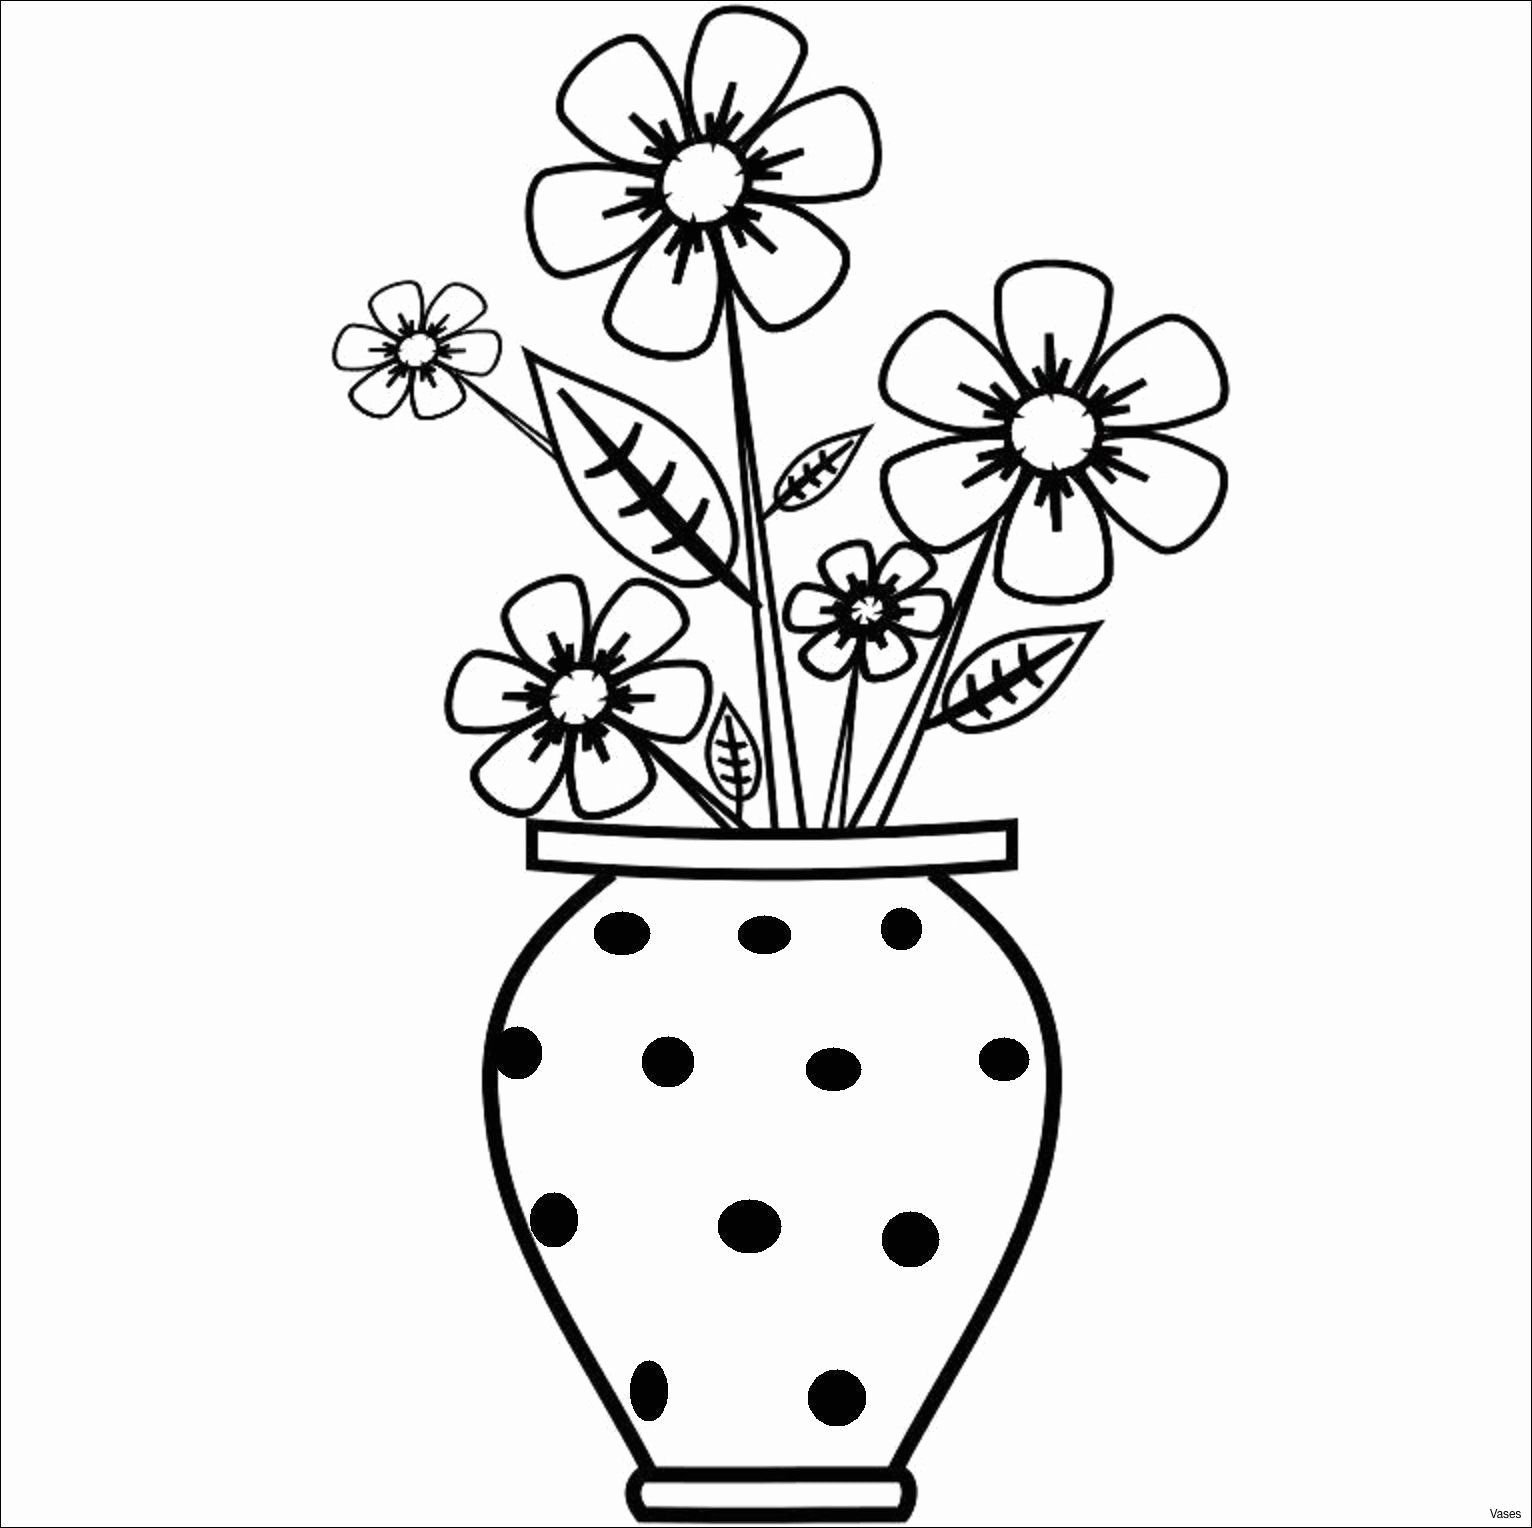 Flowers Drawing Book For Adults Inspirational Beautiful Beautiful Black Flowers Beautiful Flow In 2020 Flower Drawing For Kids Easy Flower Drawings Flower Vase Drawing